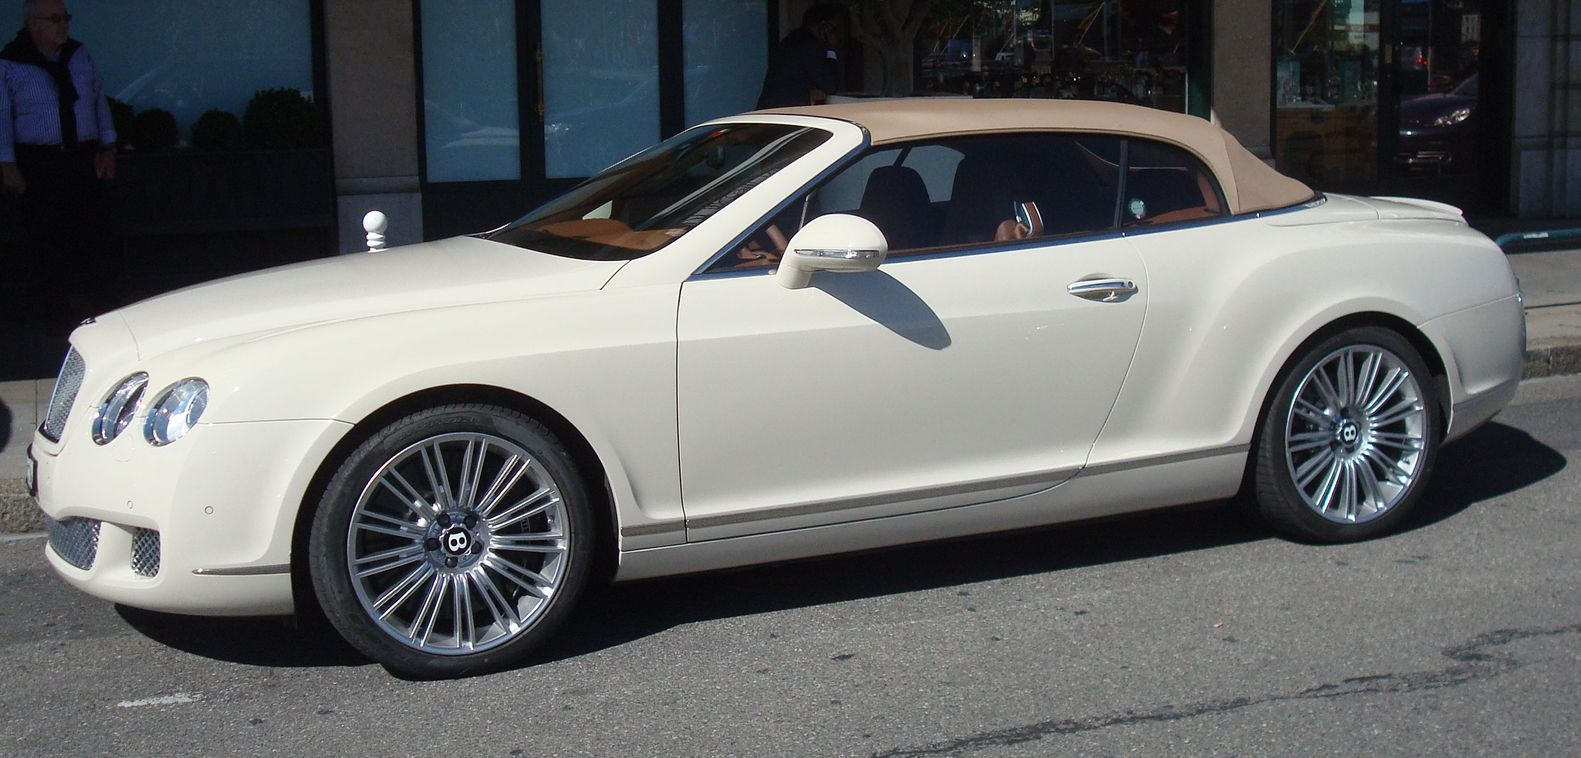 Bentley Cabriolet Uk 2009 Voiture De Luxe Limousine